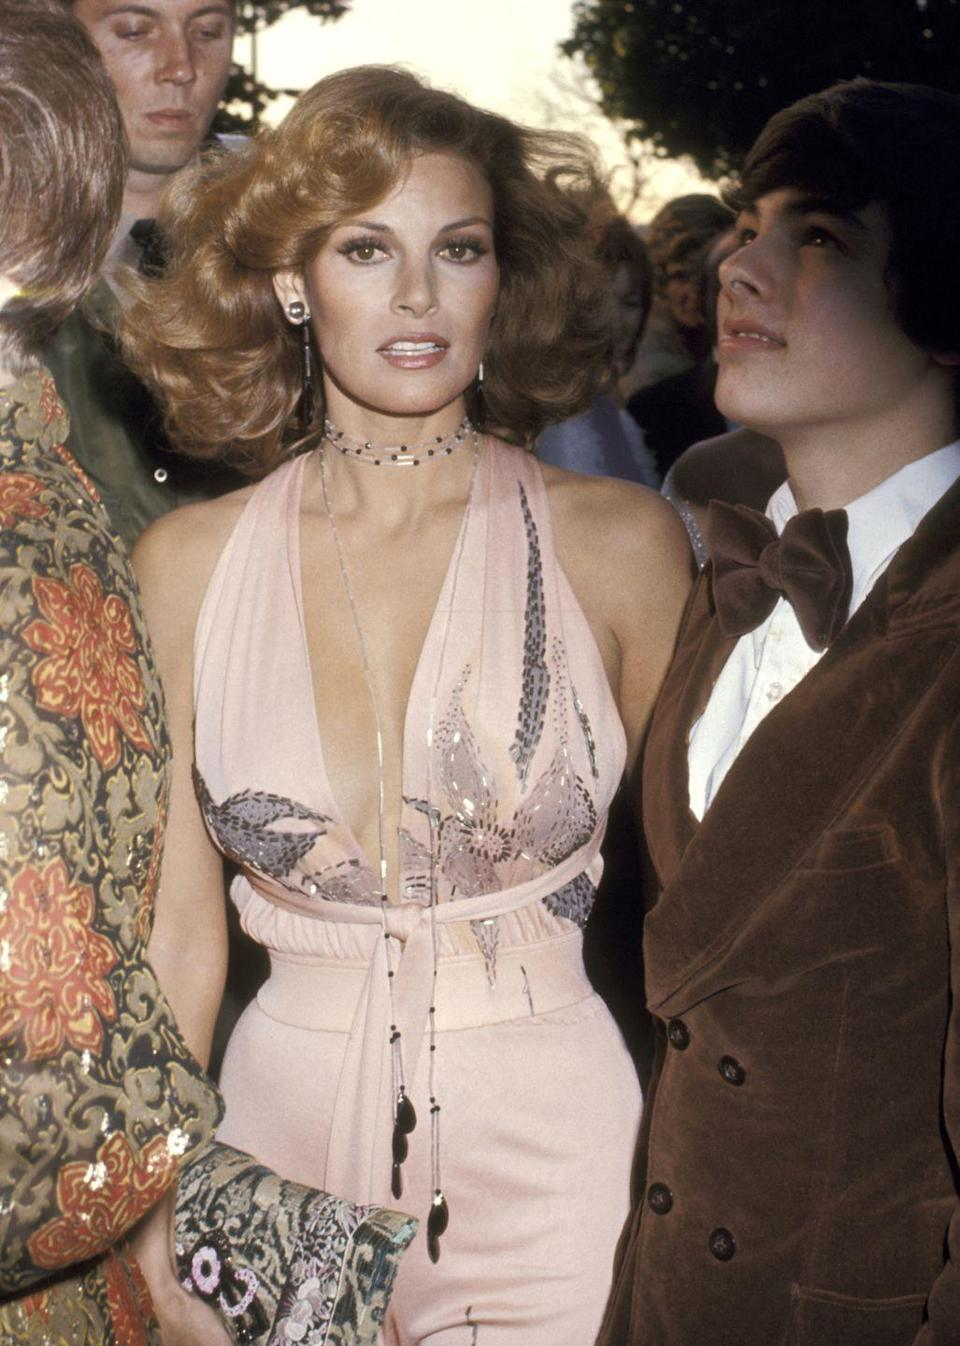 <p>Add together a haltered pink jumpsuit, a plunging neckline, and a wrap necklace, and you get one of the hottest Oscars looks of all time. The actress presented the award for Best Feature-Length Documentary that year.</p>